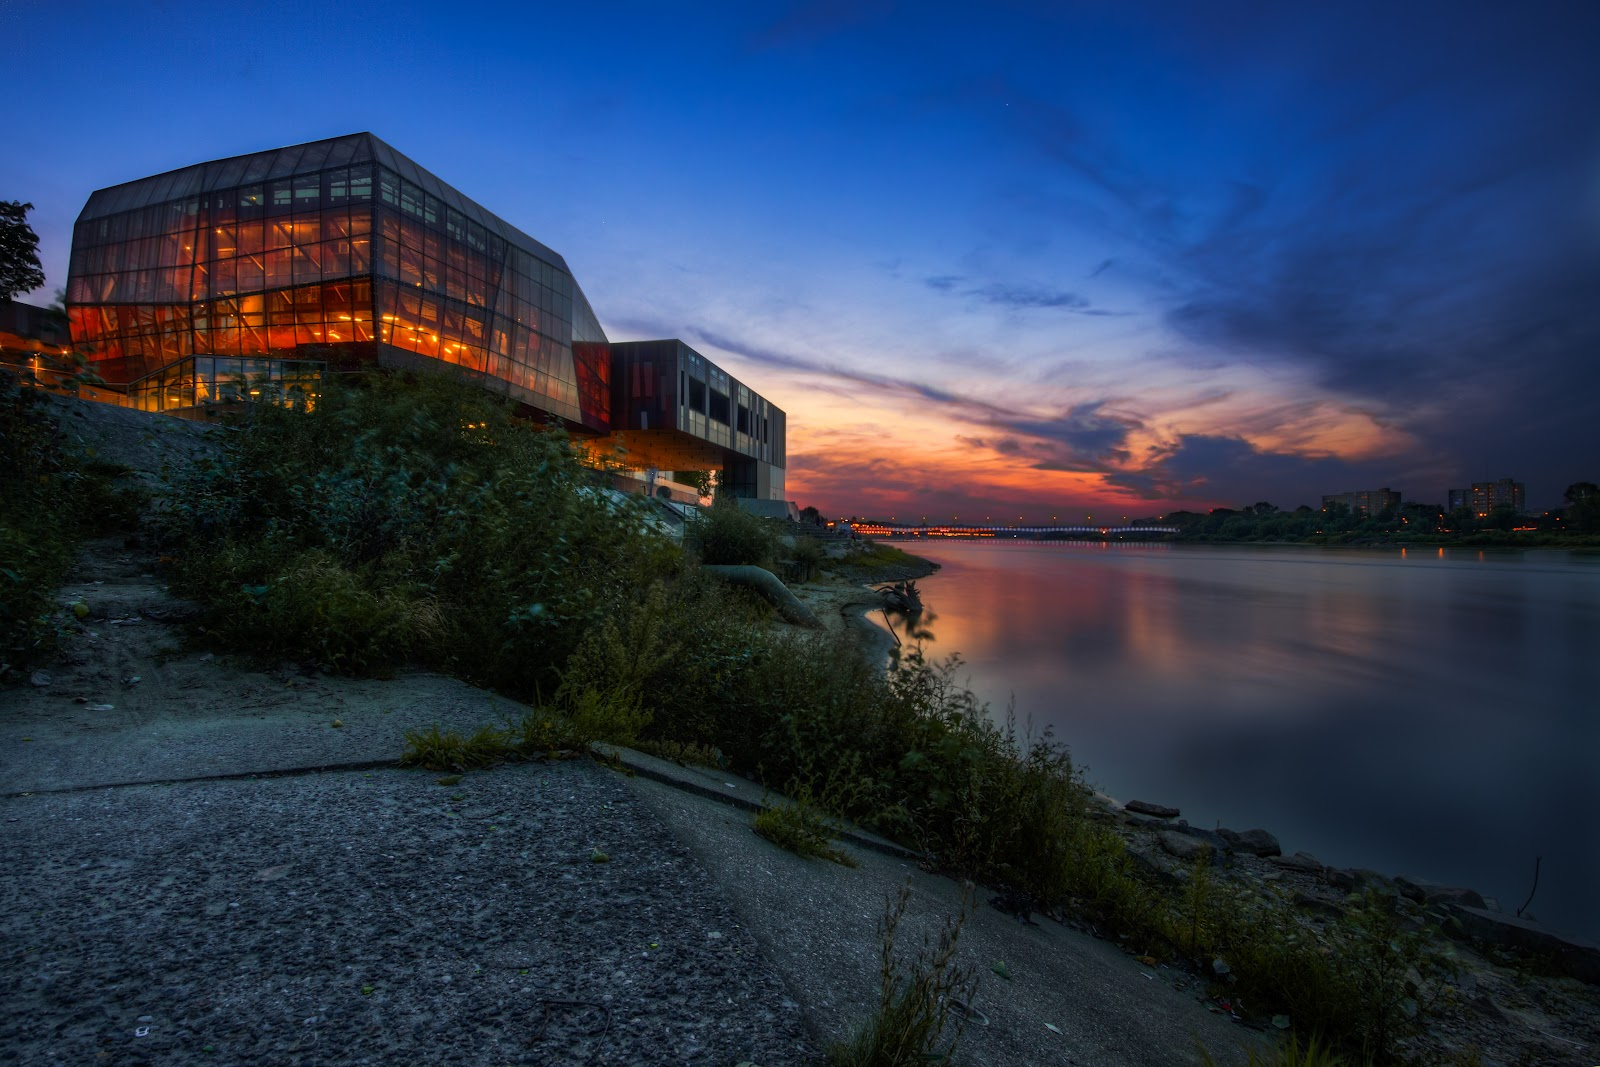 HDR photo of Copernicus Science Center in Warsaw, Poland.